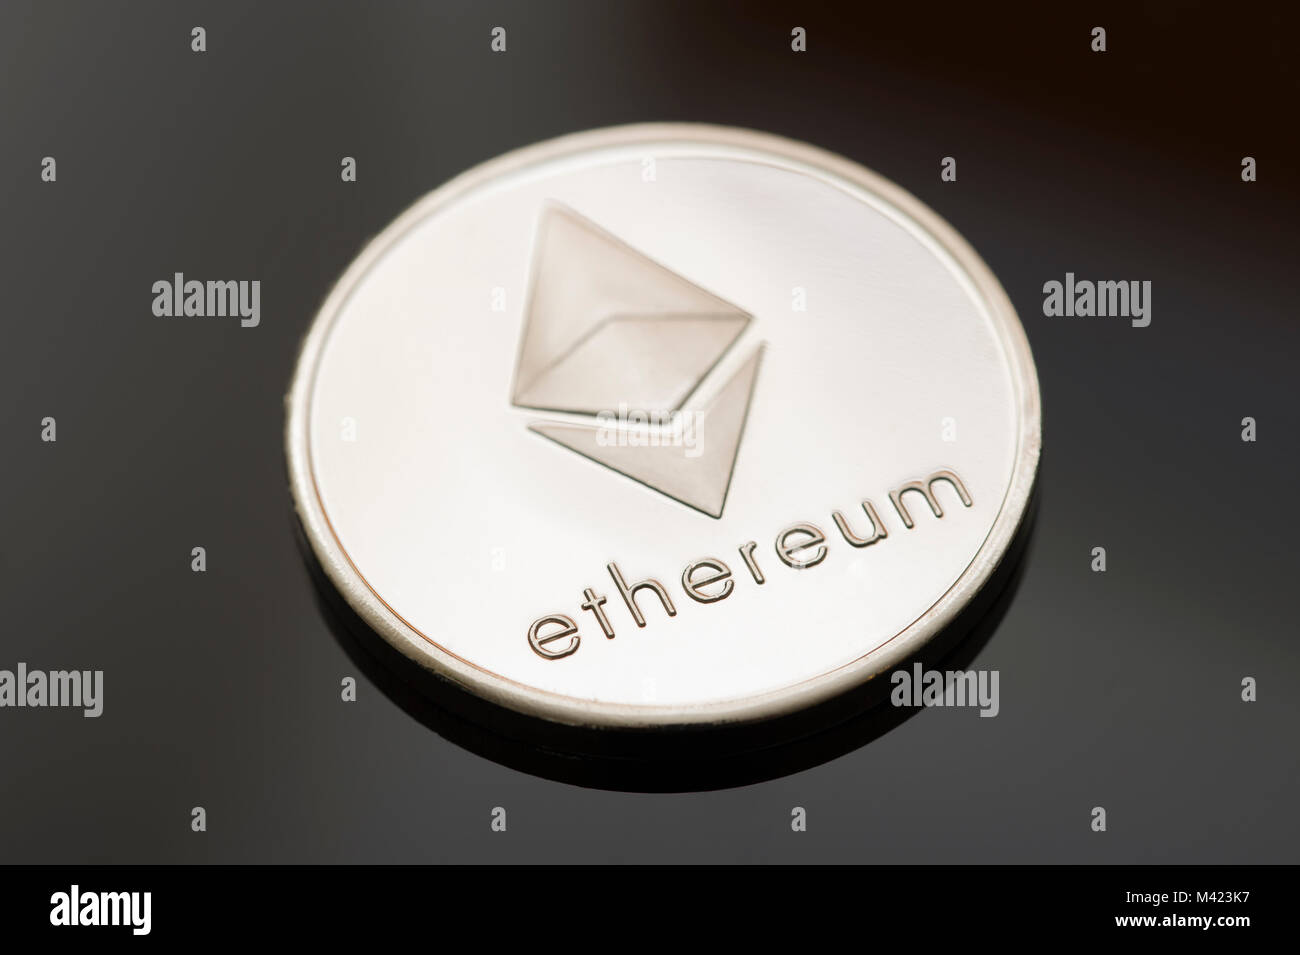 A single Ethereum (Ether) token or coin on a black background. One of many digital or cryptocurrencies that use - Stock Image